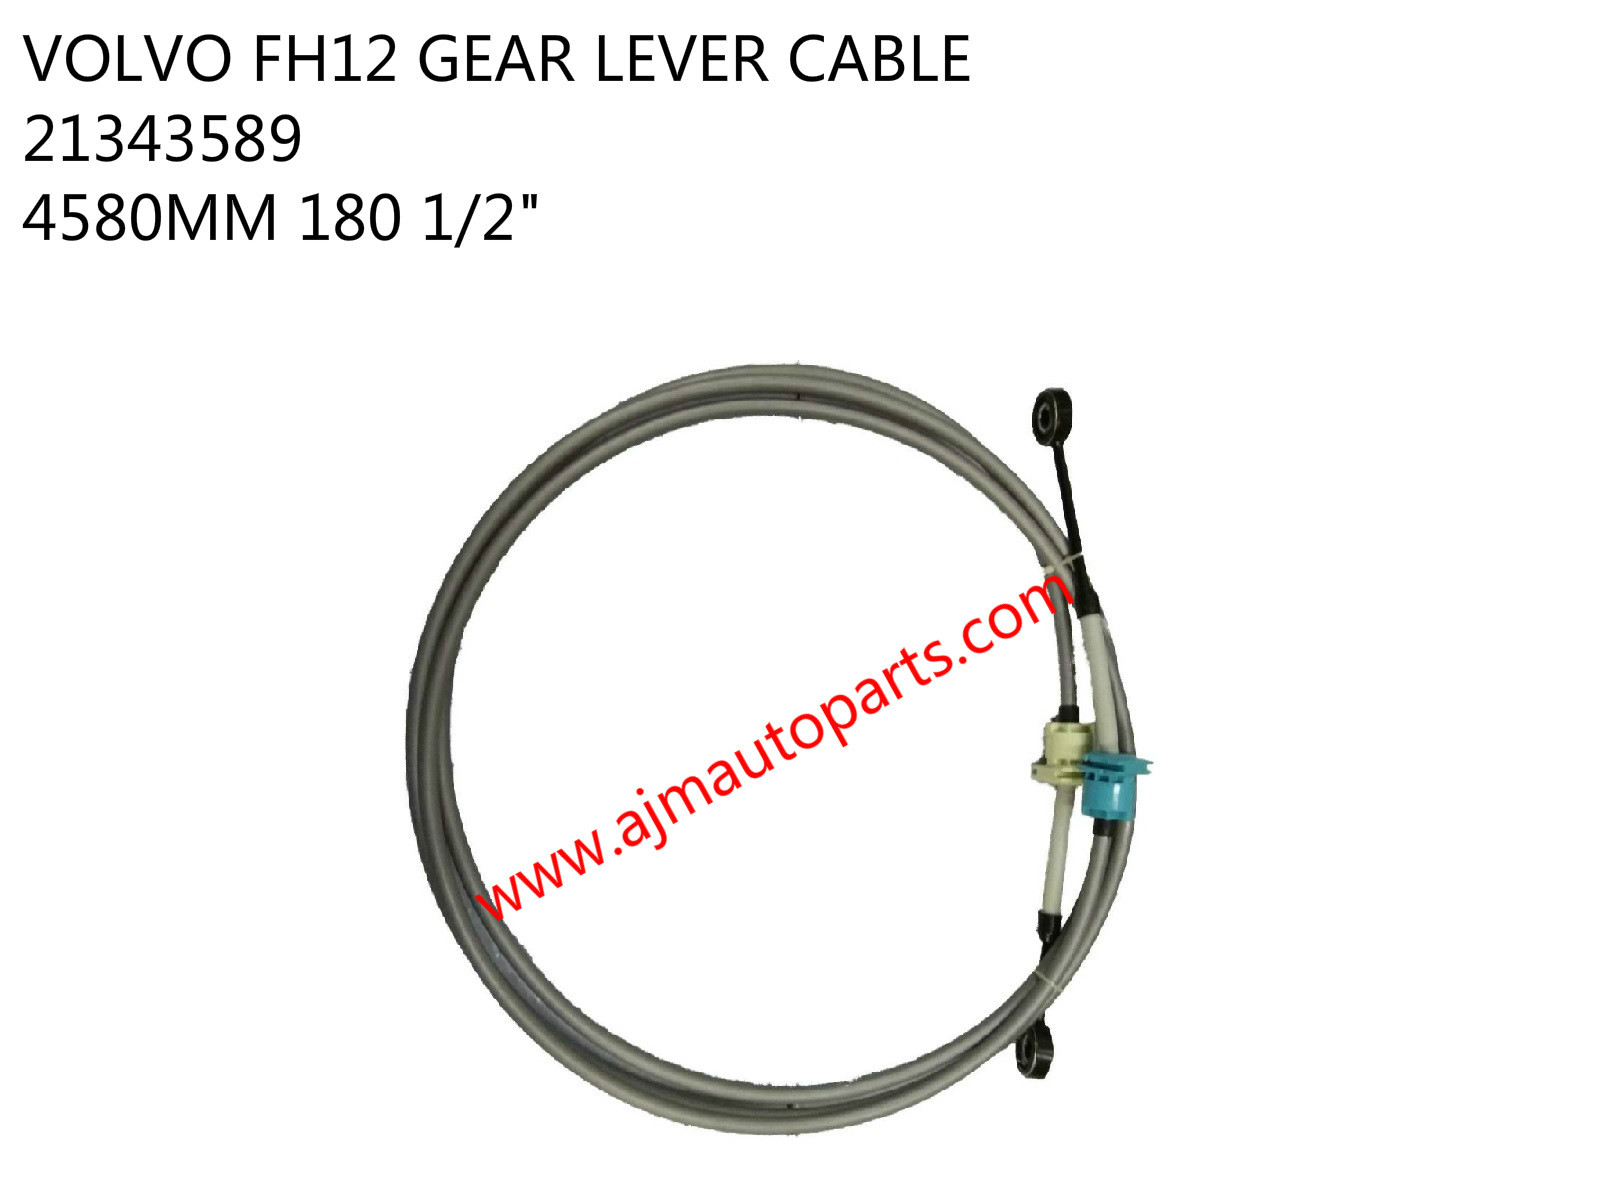 VOLVO FH12 GEAR LEVER CABLE-21343589